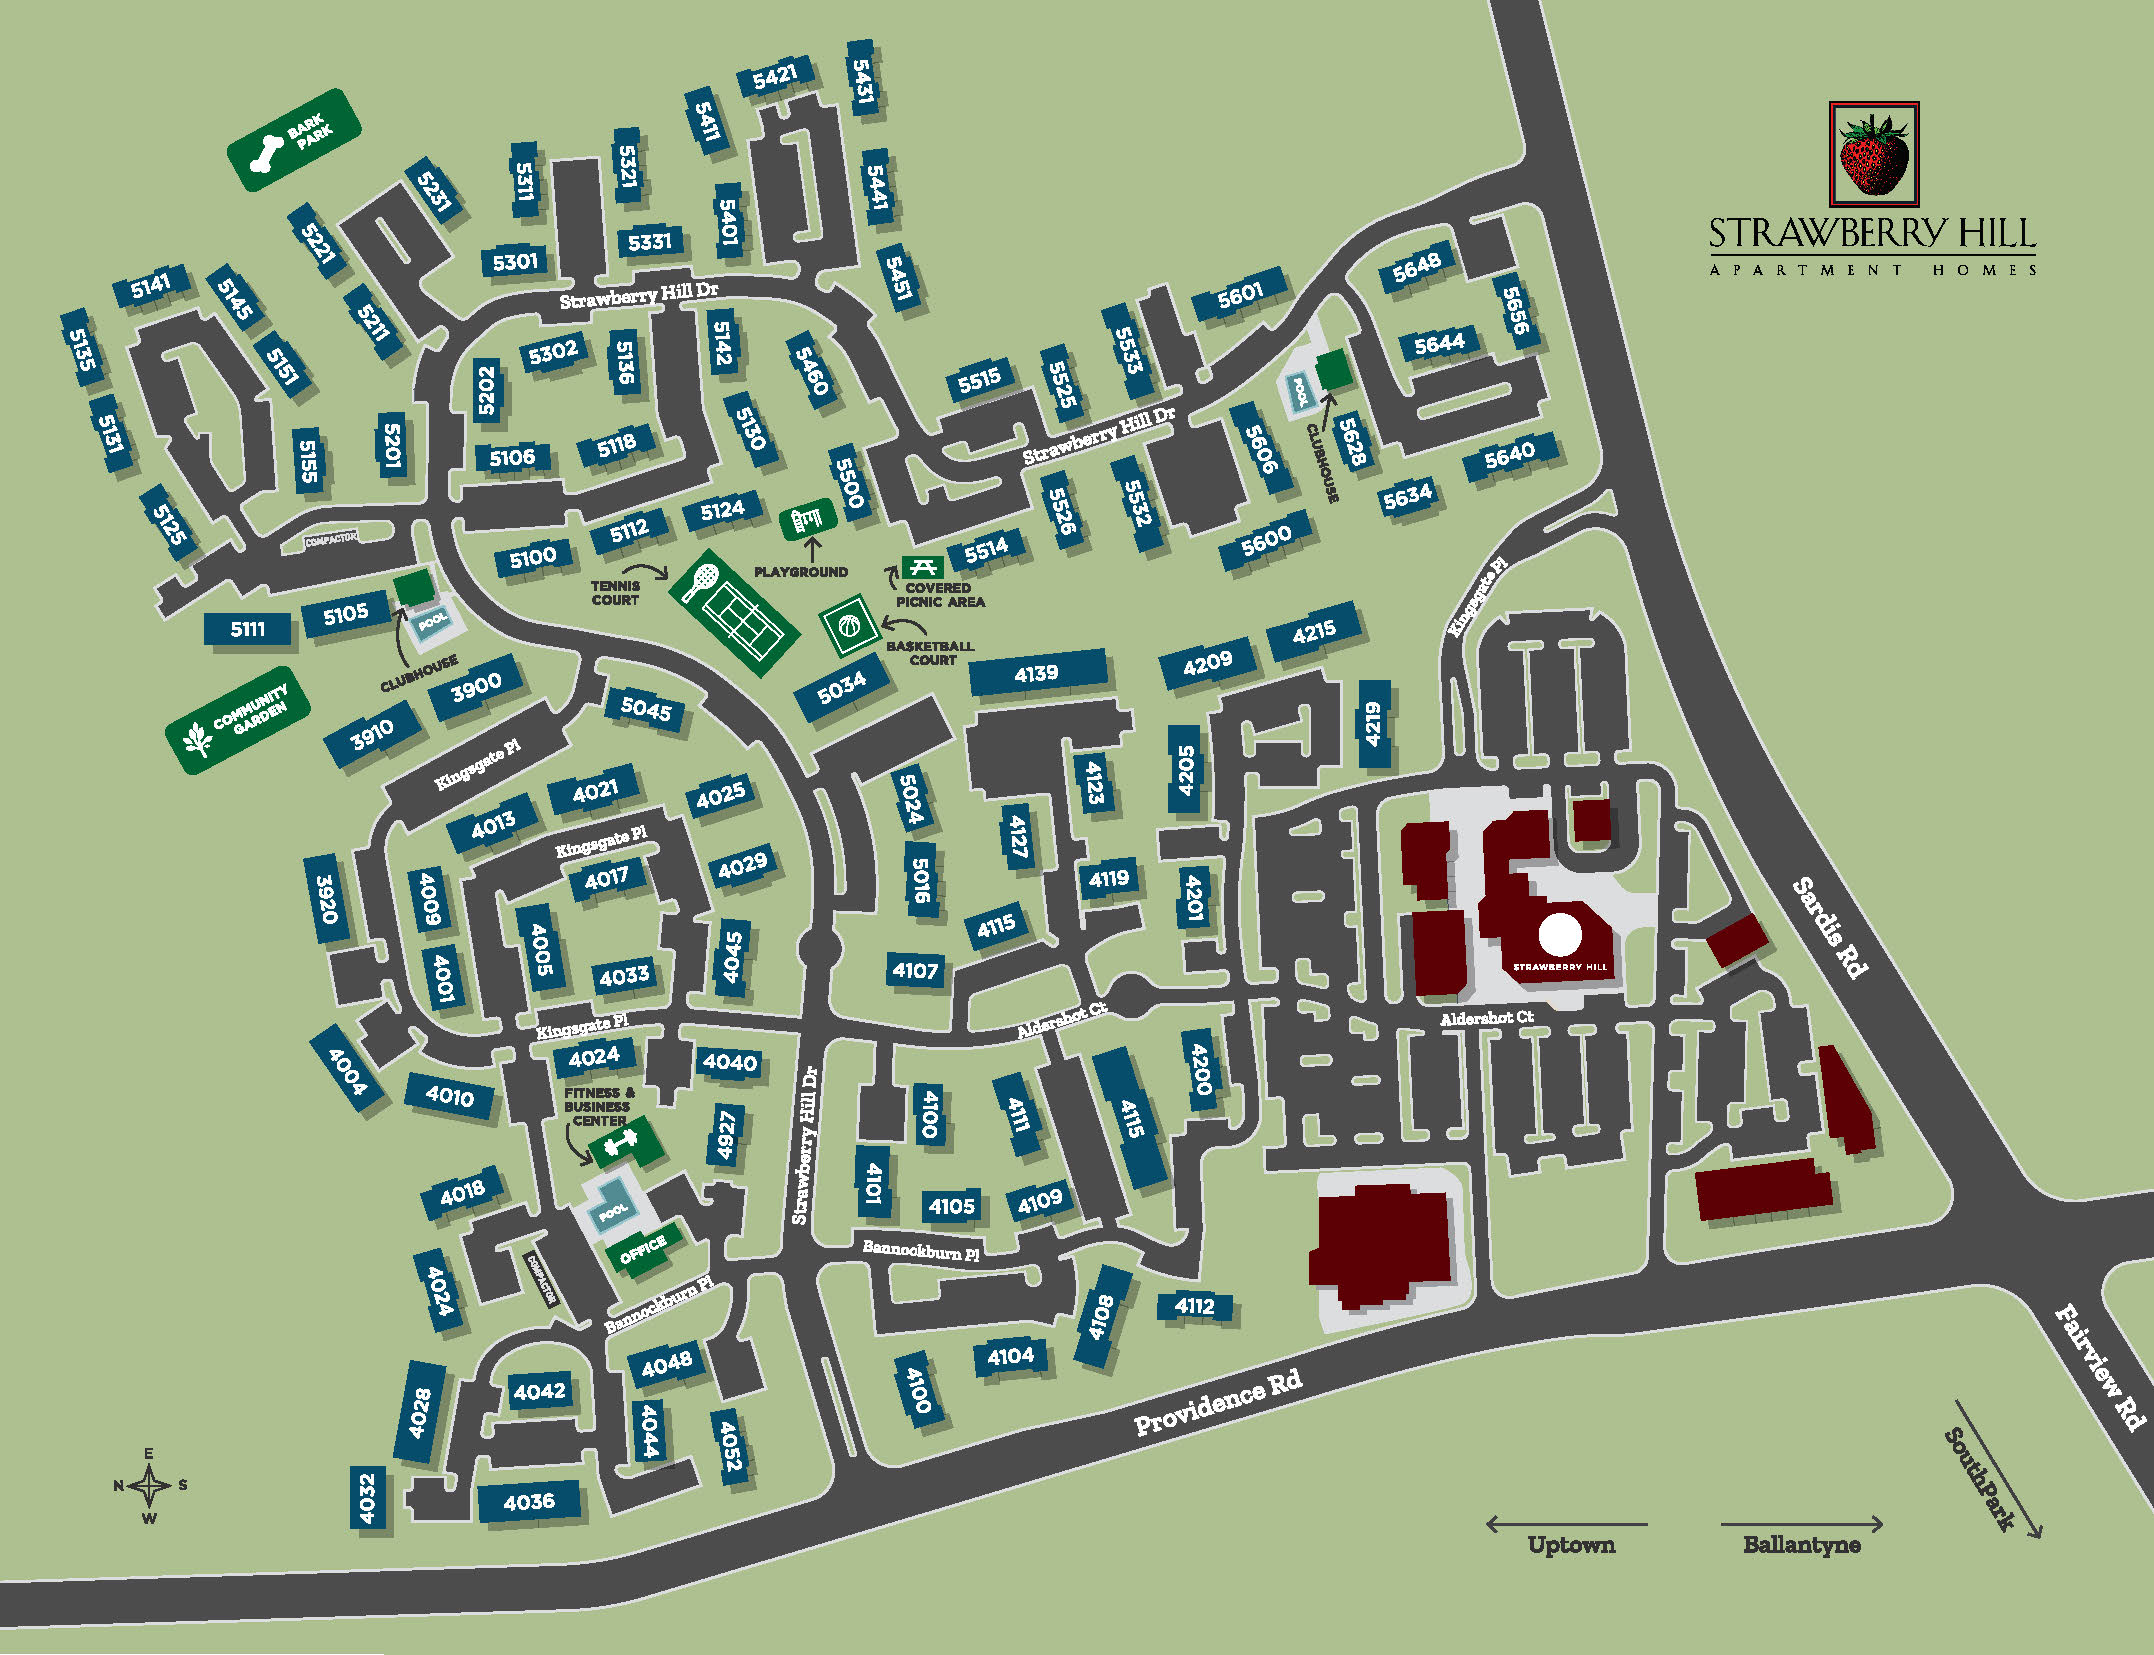 Strawberry Hill Siteplan